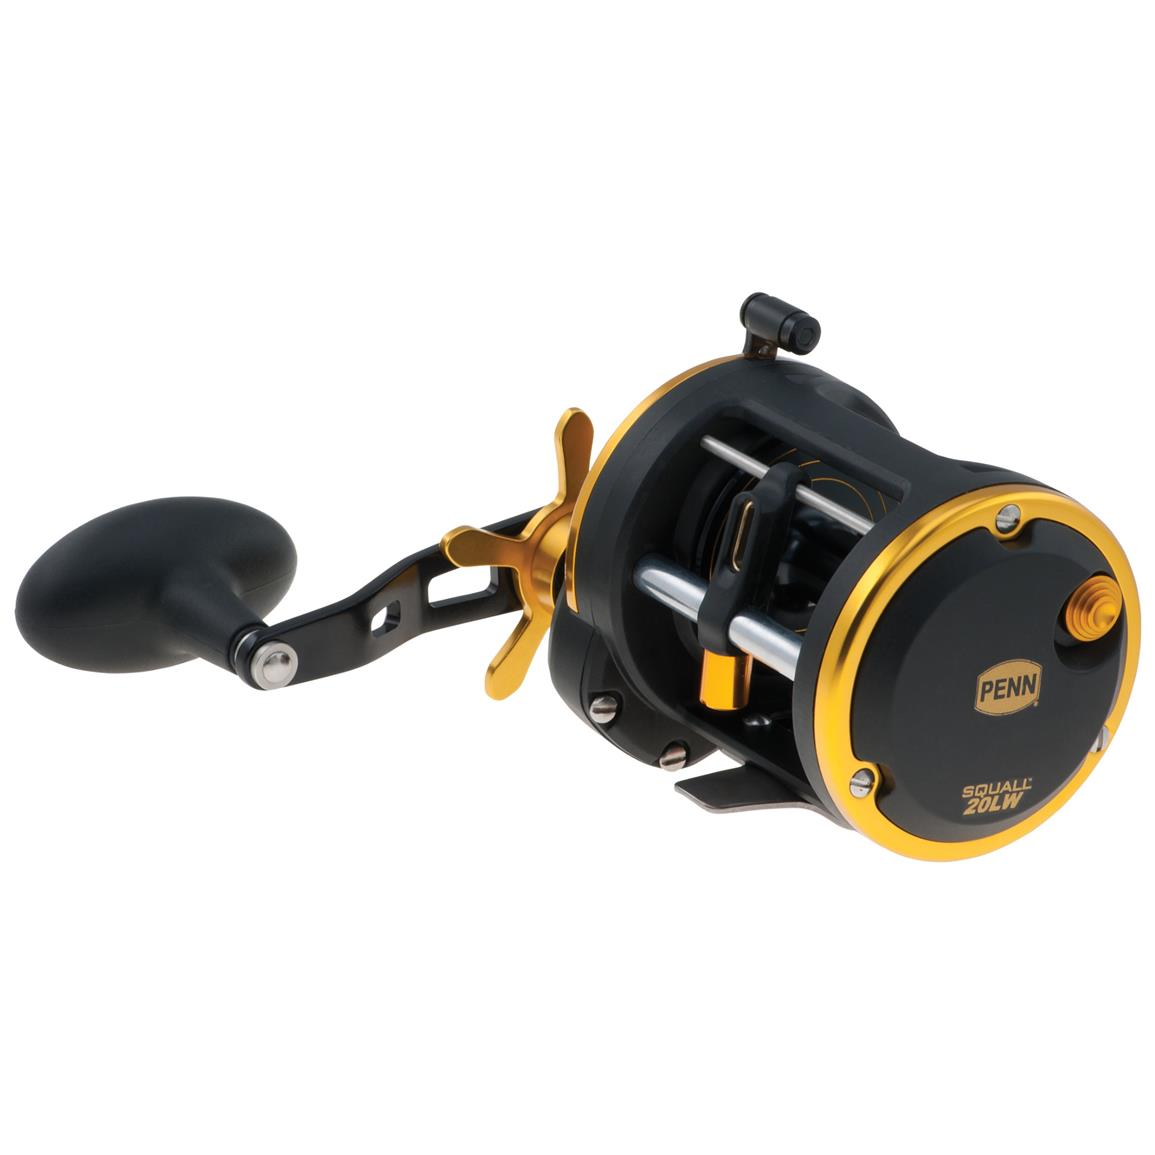 Penn® Squall Level Wind Baitcasting Reel